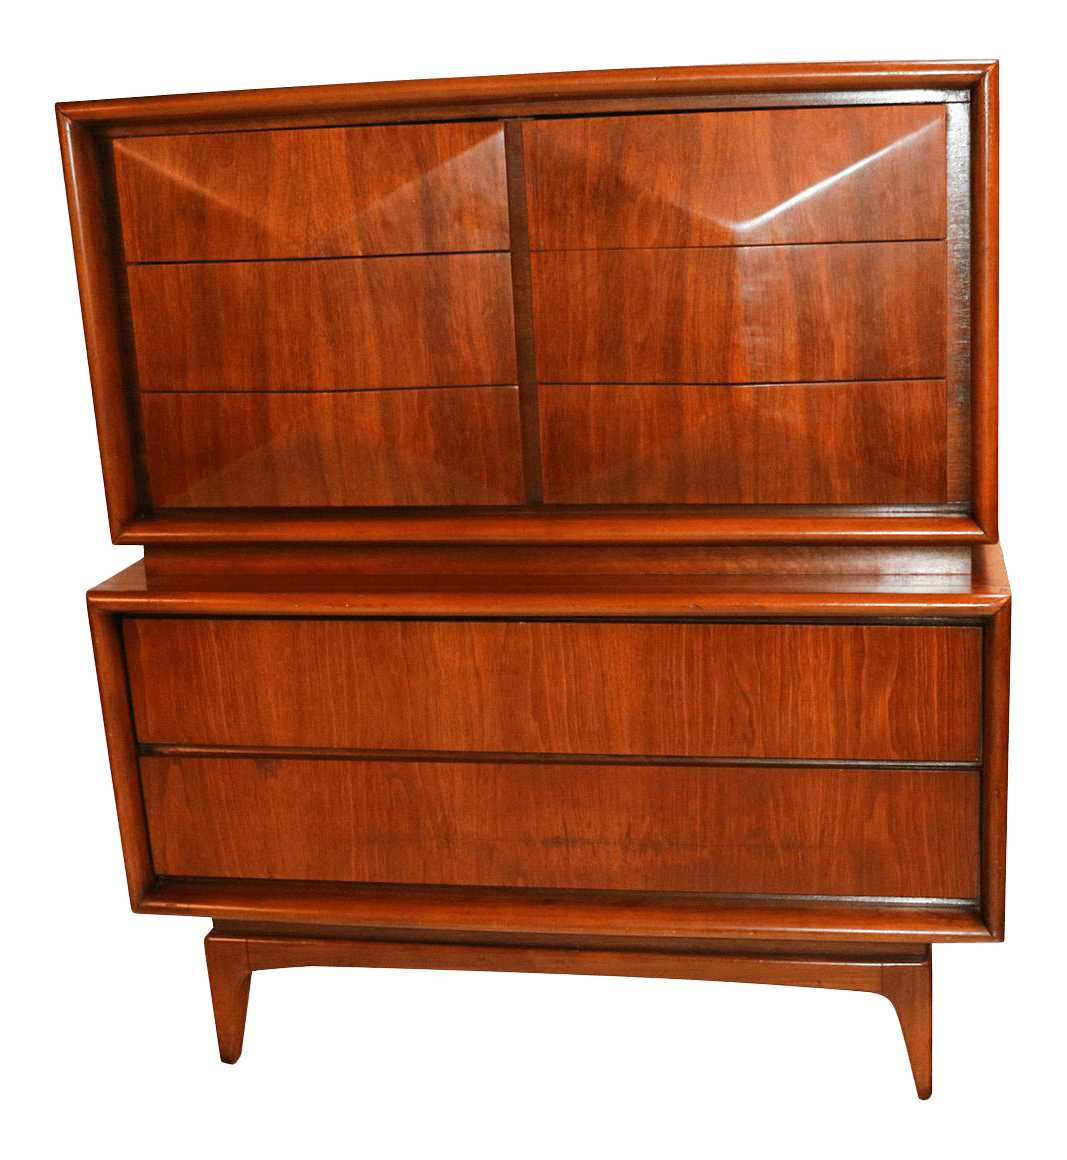 Vintage  Used United Furniture Corporation Dressers and Chests of Drawers  Chairish